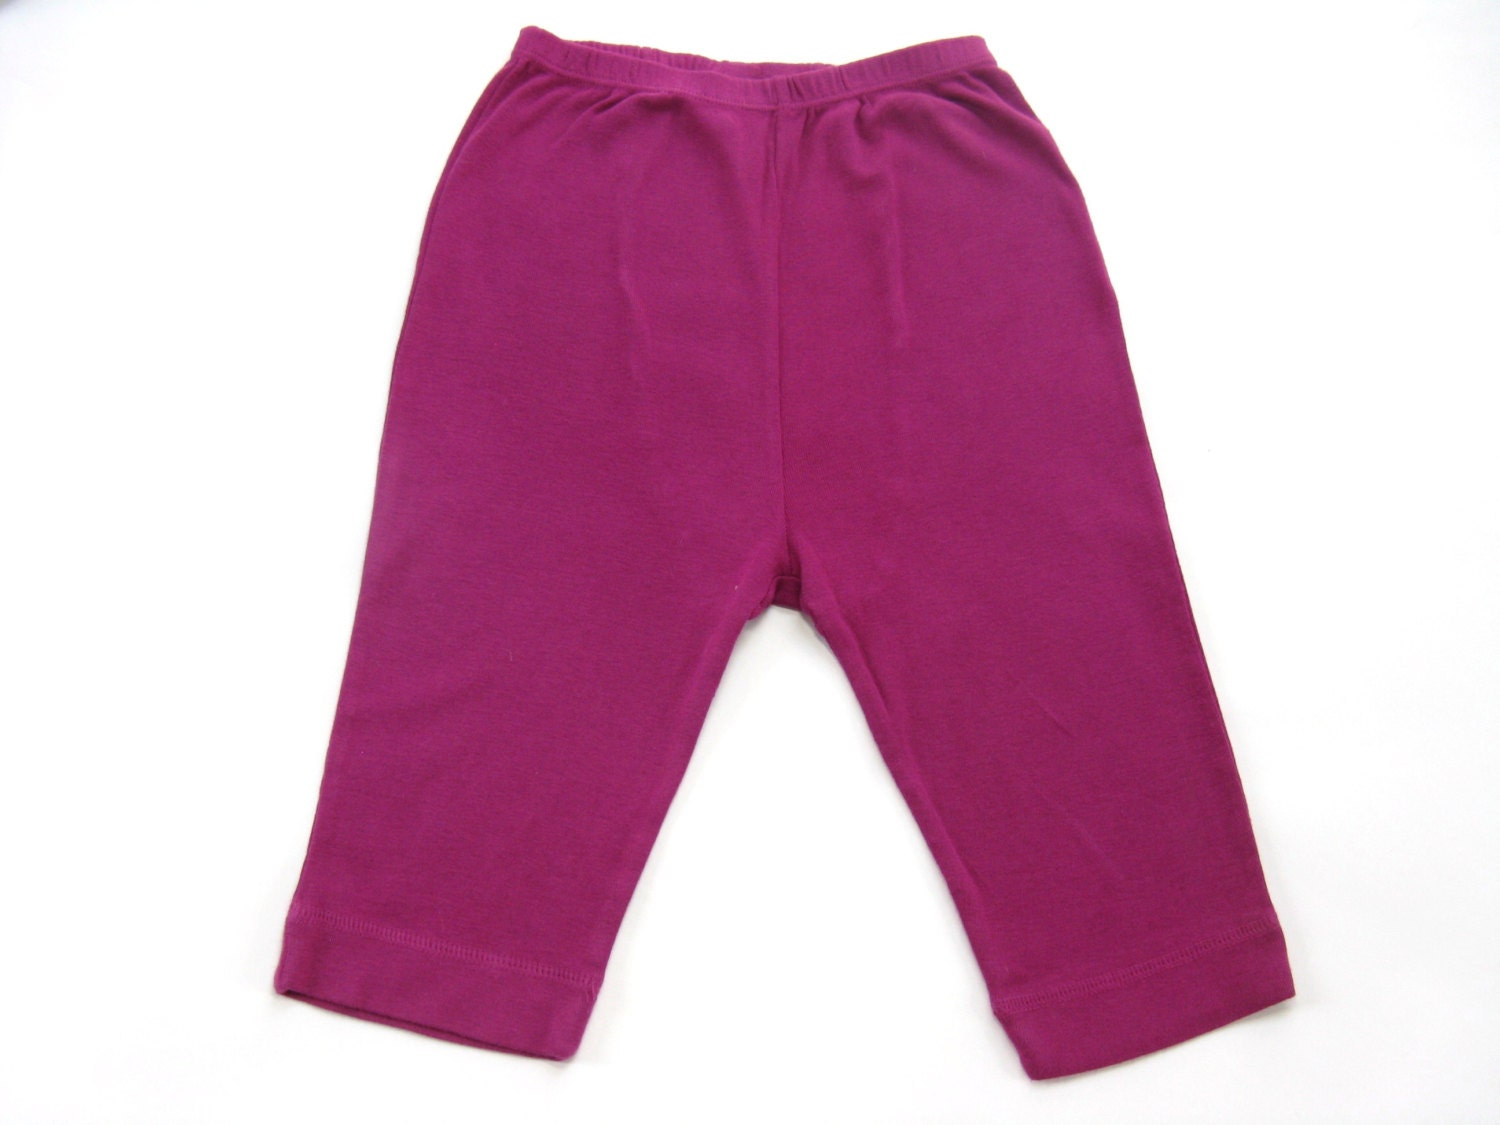 Girls Yoga Pants Baby and Toddler Blank Clothing Cotton